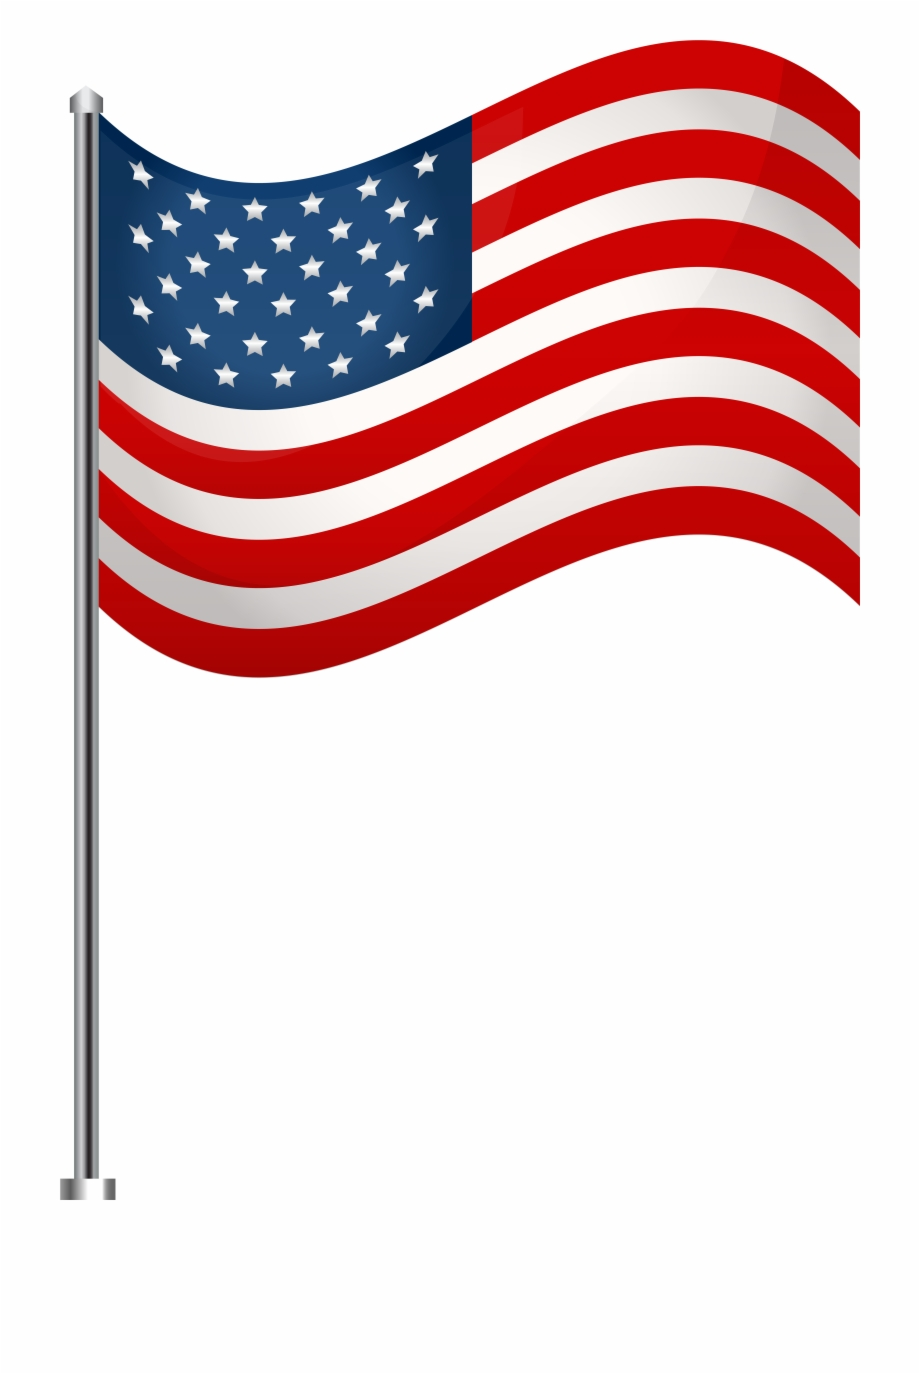 American Flag Clipart Png : american, clipart, American, Clipart, Transparent, Background,, Download, Library